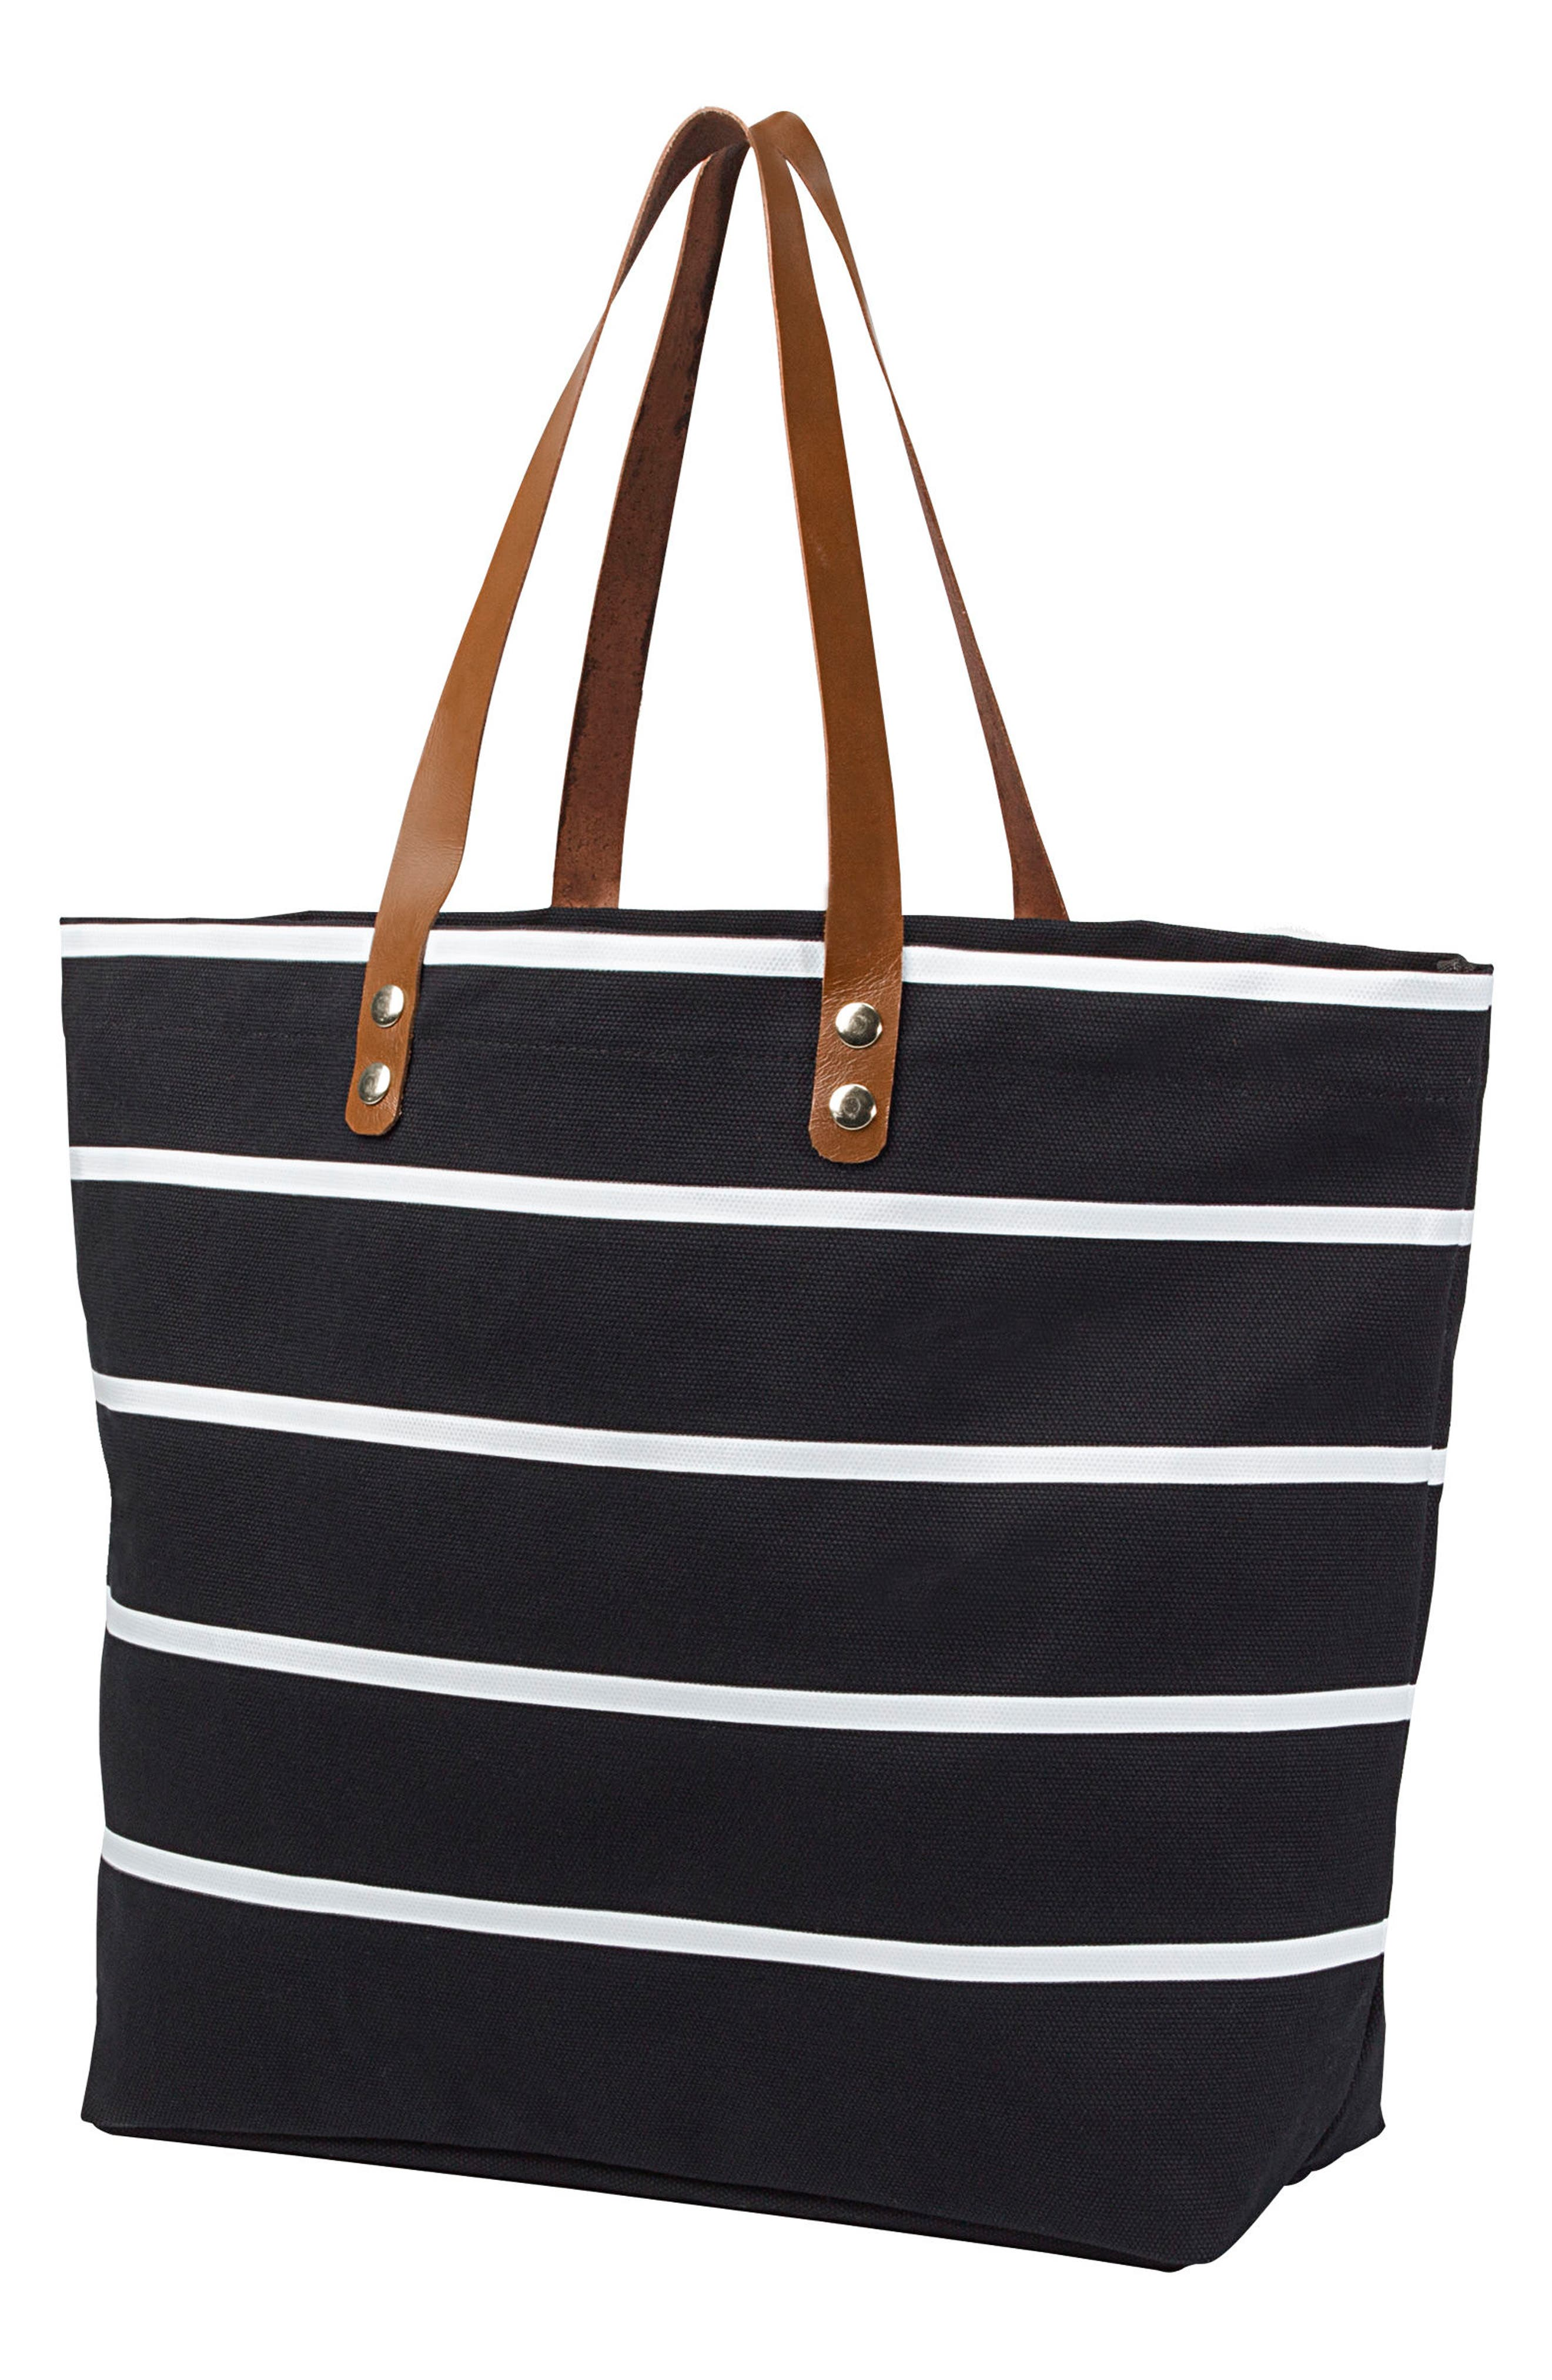 CATHY'S CONCEPTS, Monogram Large Canvas Tote, Main thumbnail 1, color, BLACK